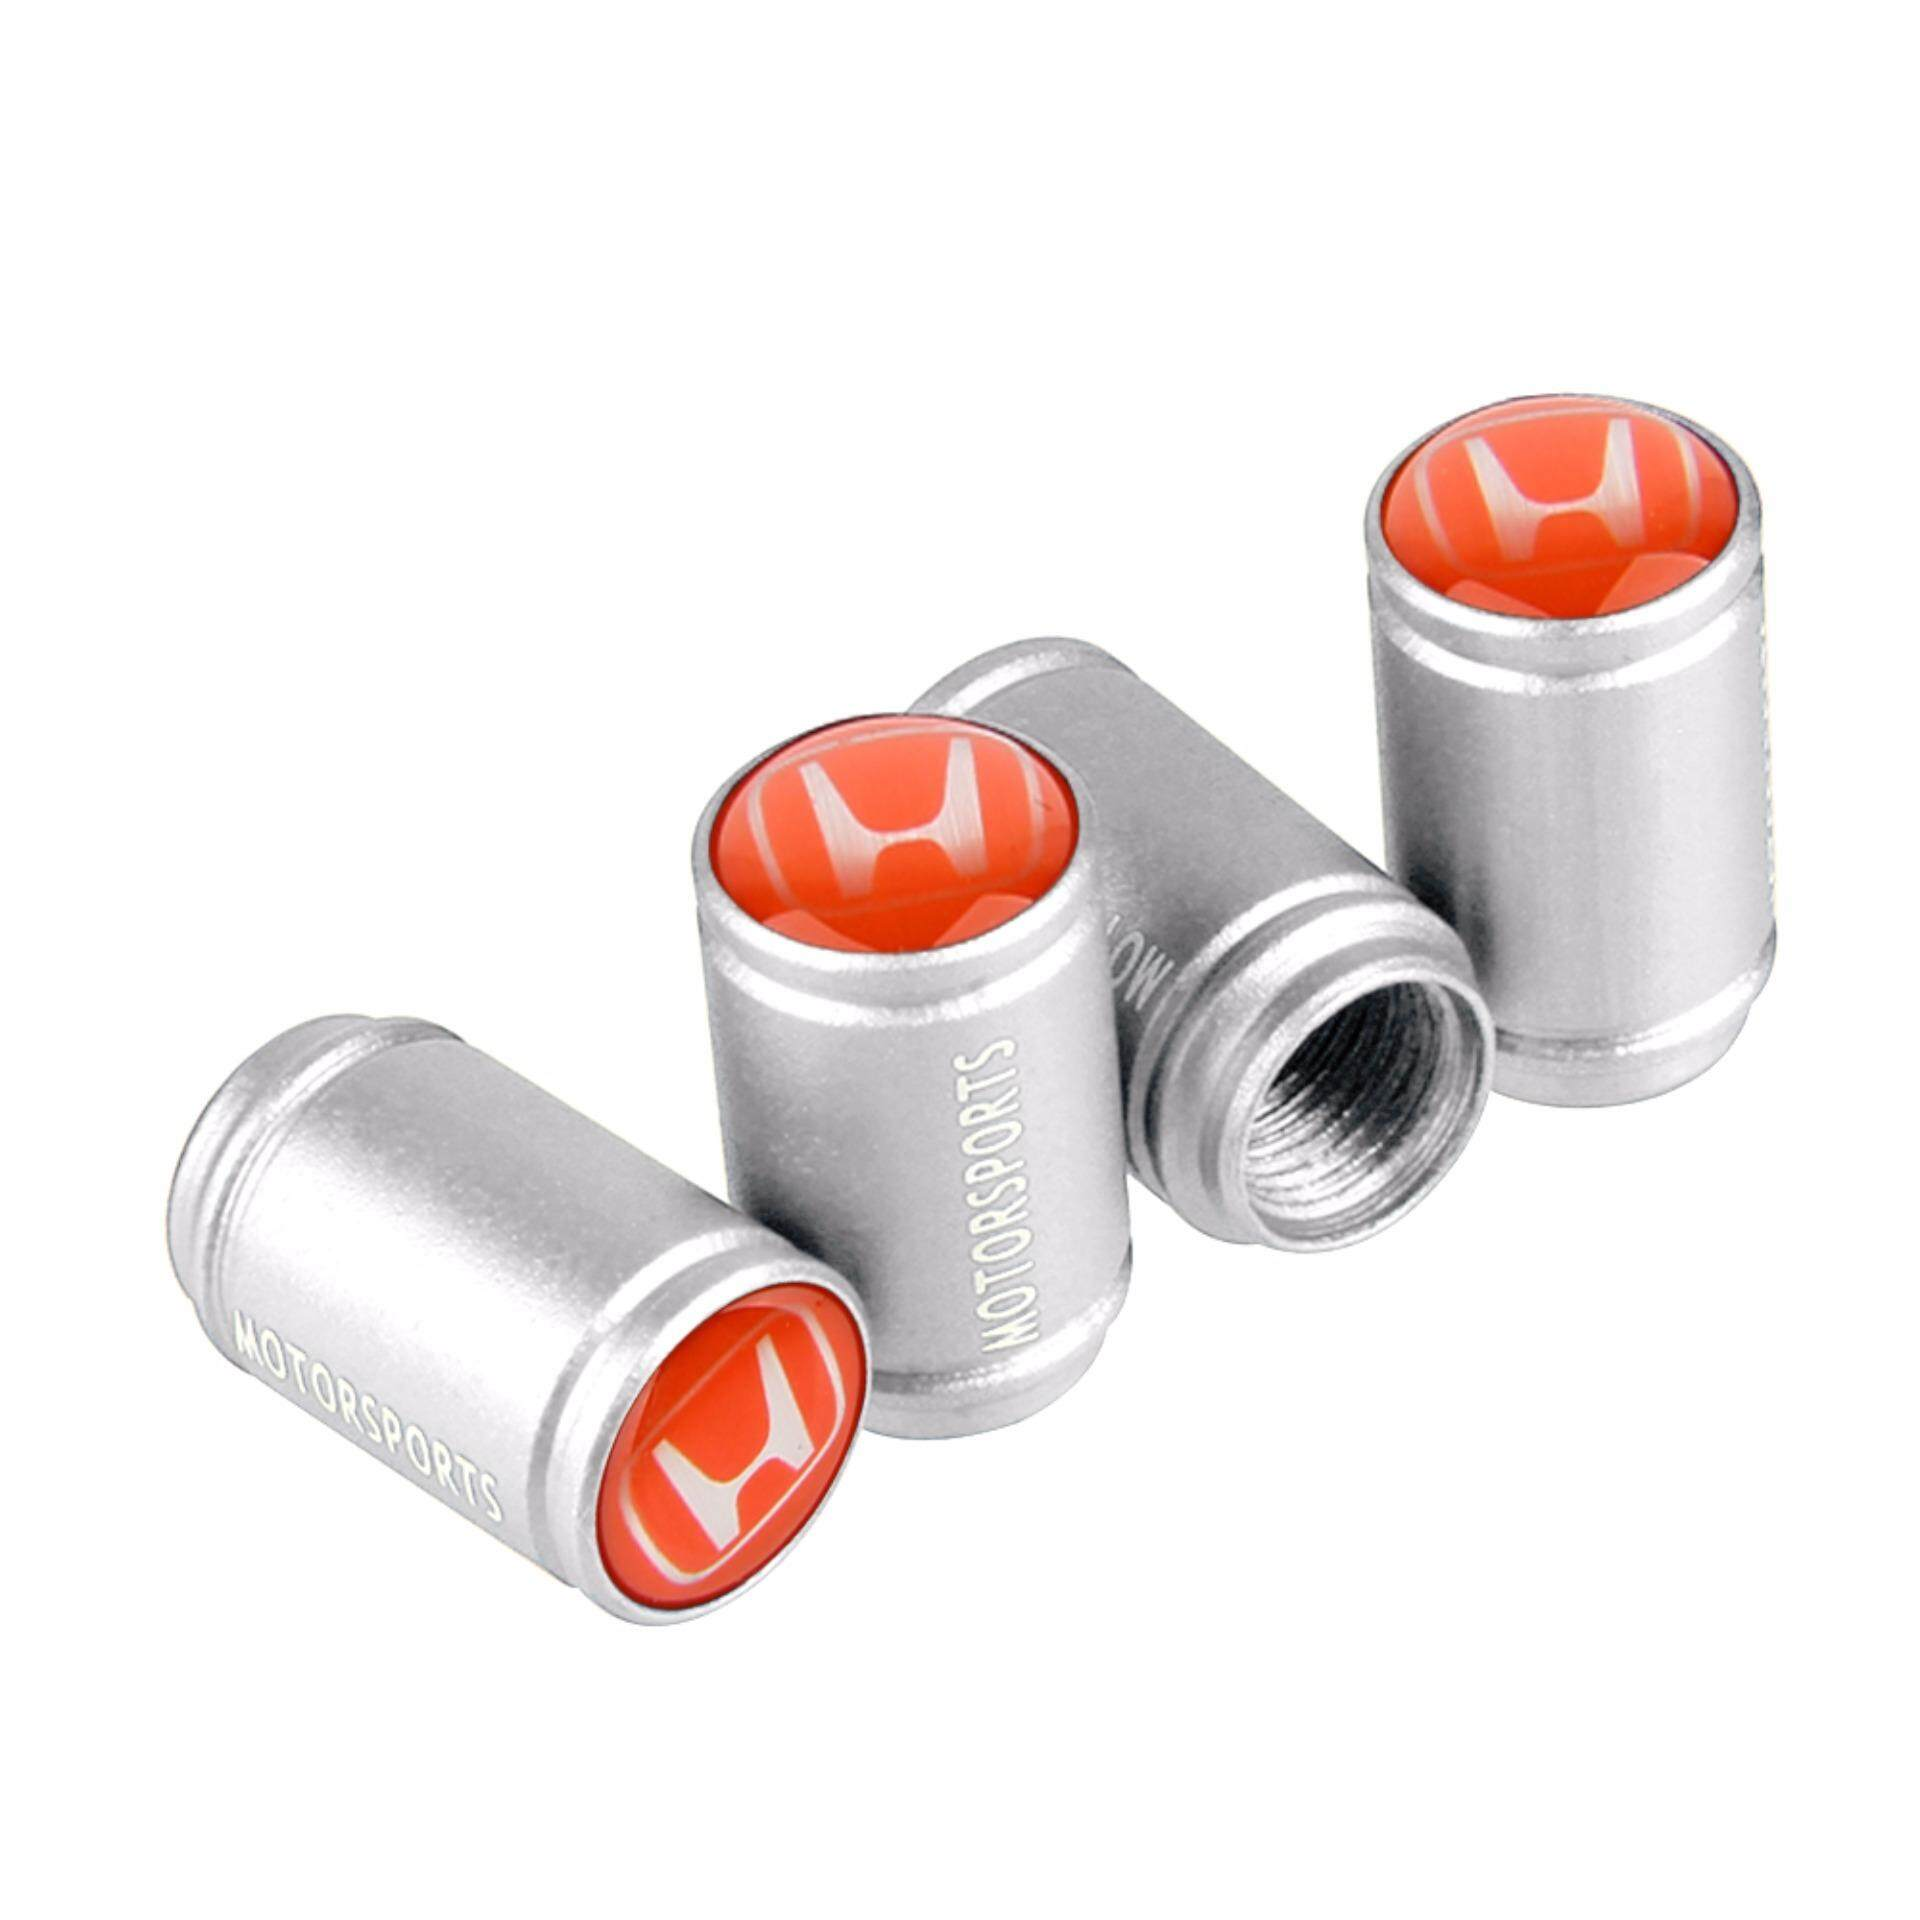 4 Pcs Theftproof Car Honda Logo Wheel Tire Valves Tyre Stem Air Caps Airtight Cover for Honda Accord Civic CRV Fit H-RV Vezel Odyssey City Car-Styling - intl